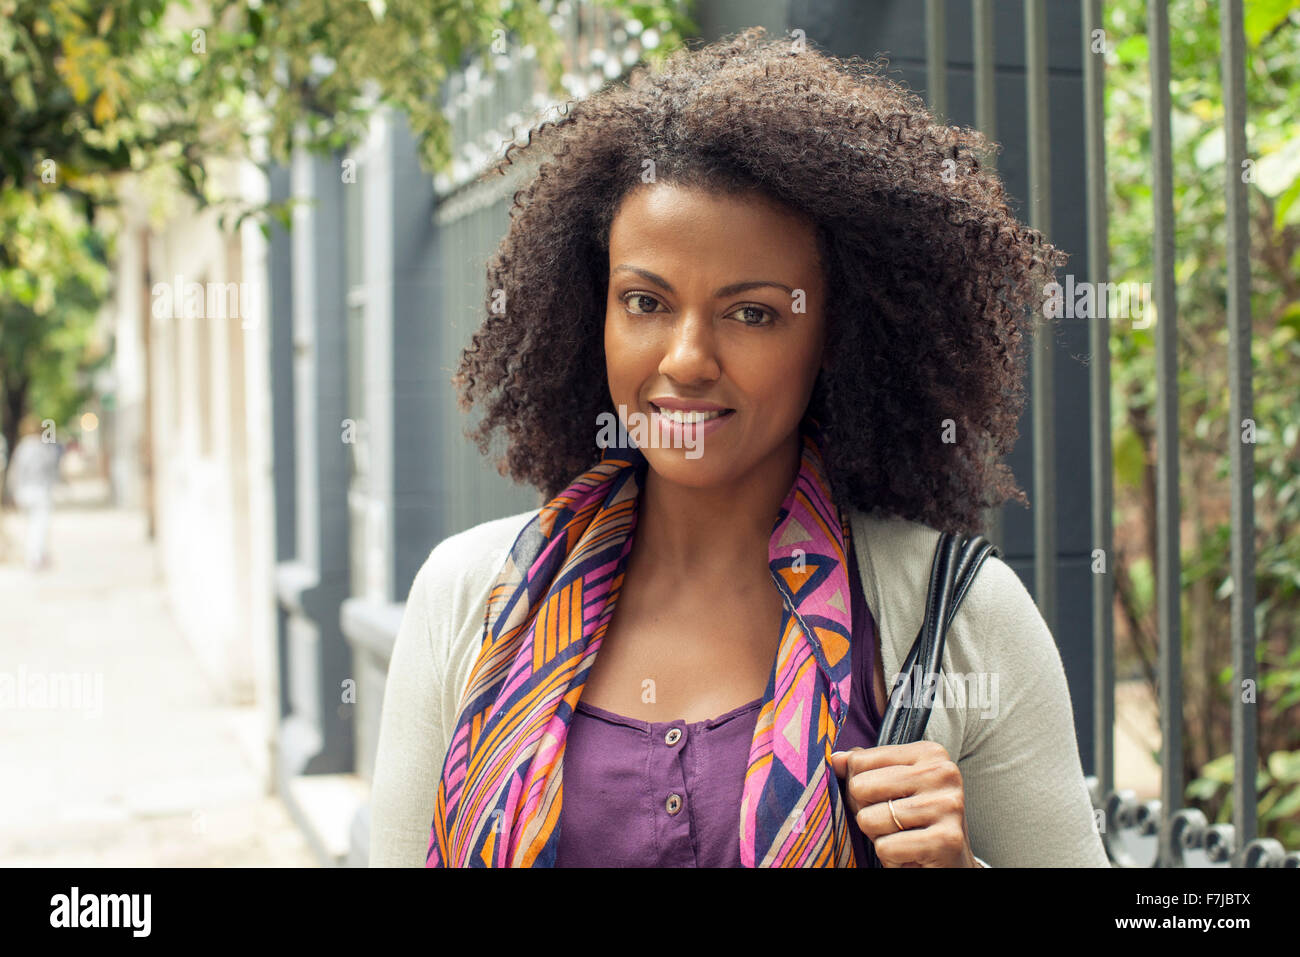 Woman with curly hair, portrait - Stock Image